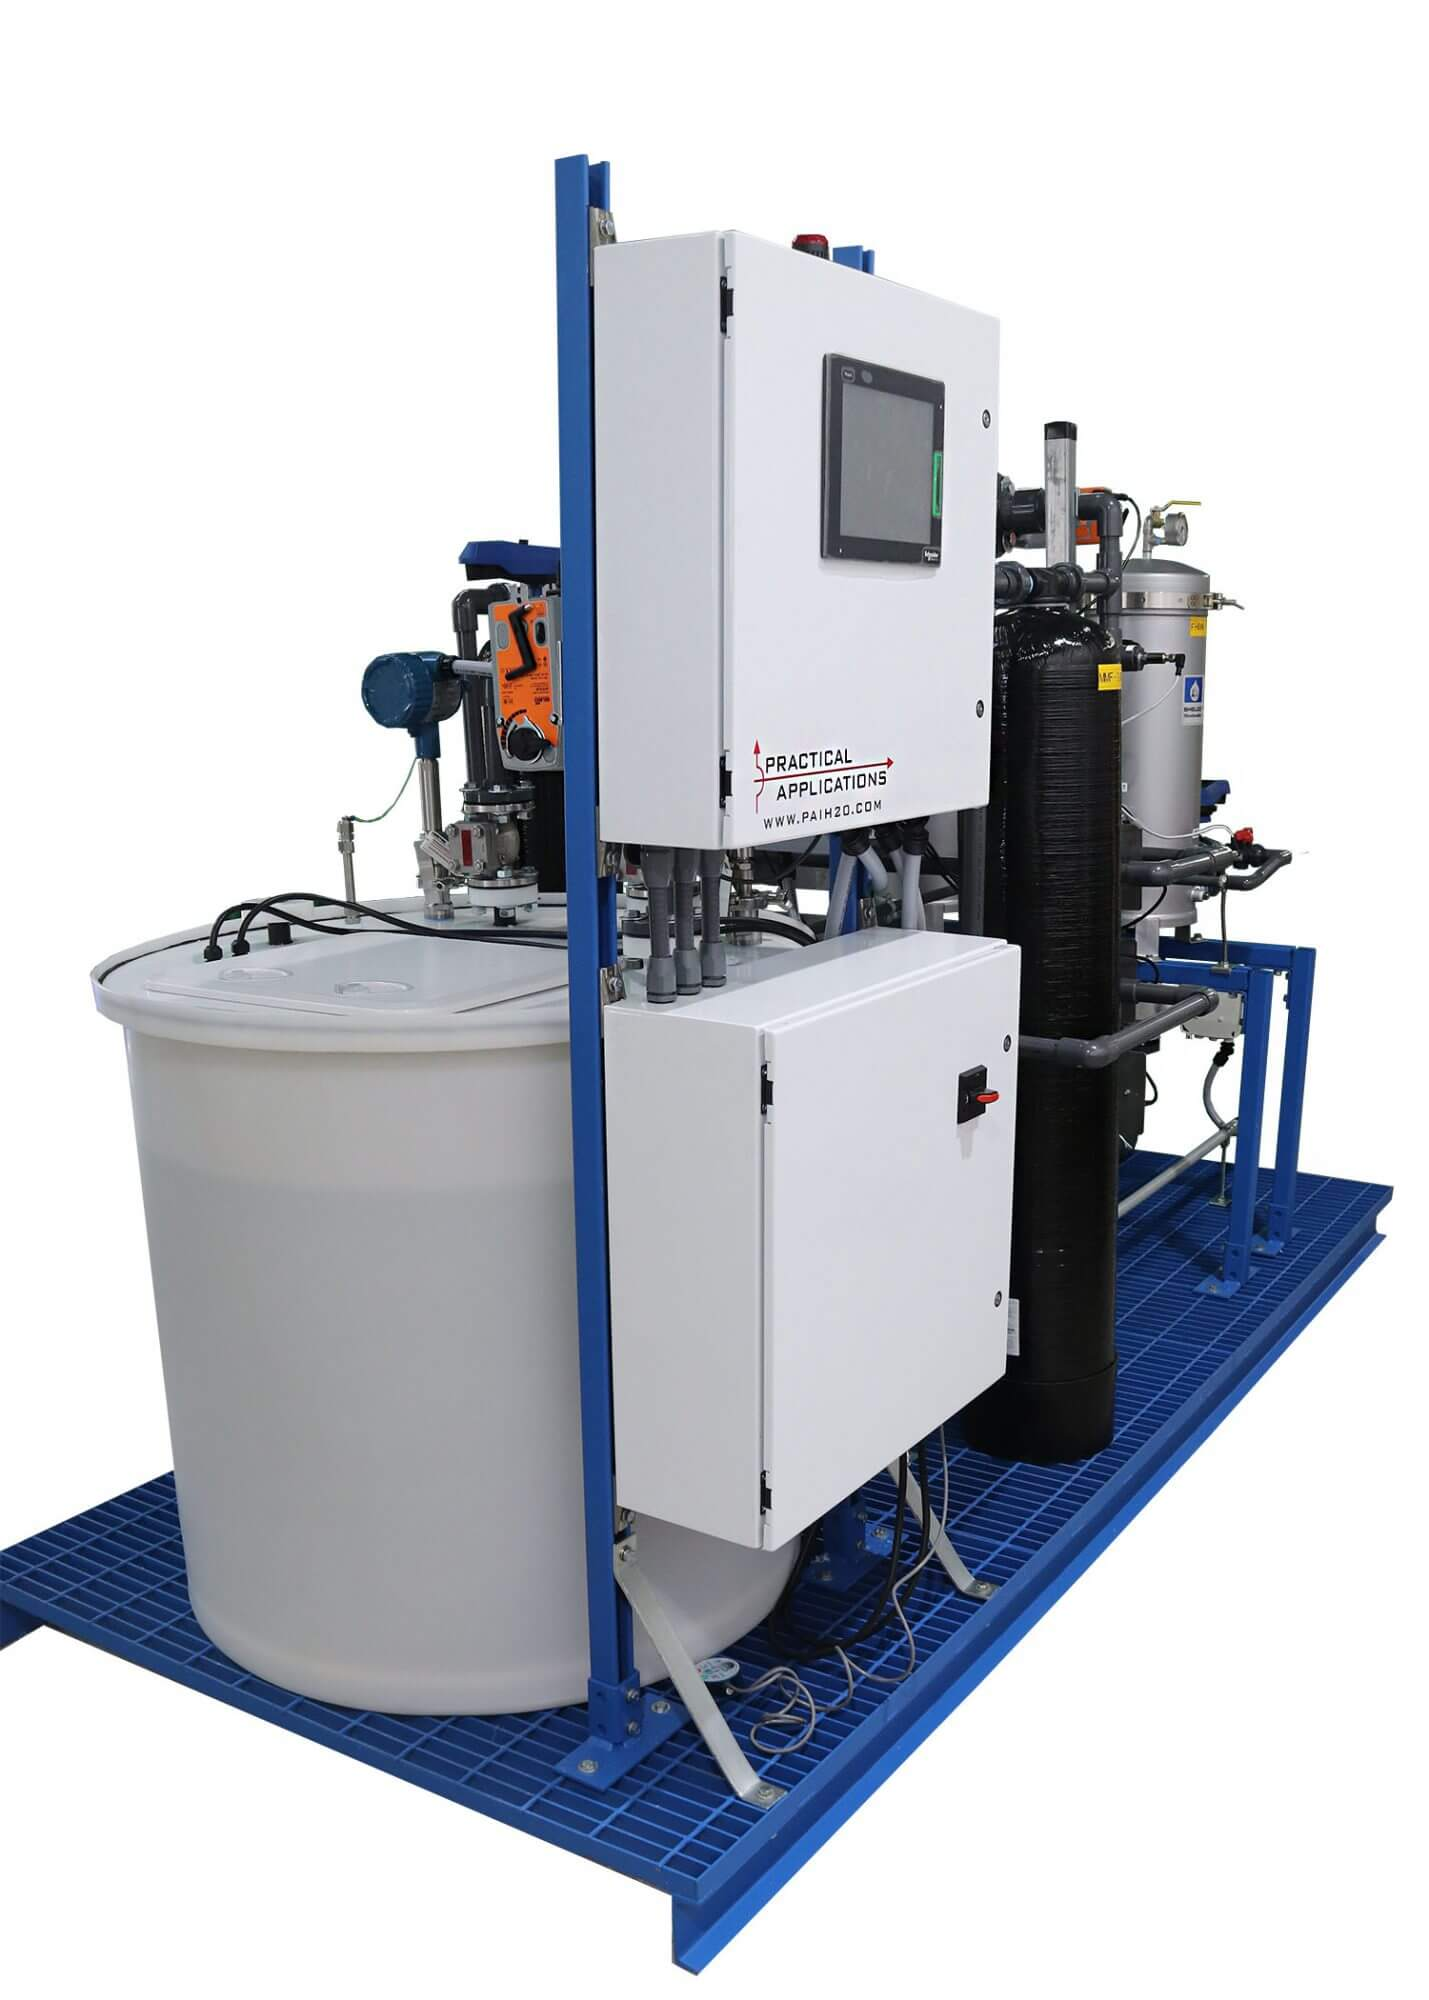 Practical Applicatoins Custom Legacy Mercury Clean Up Pure Water System